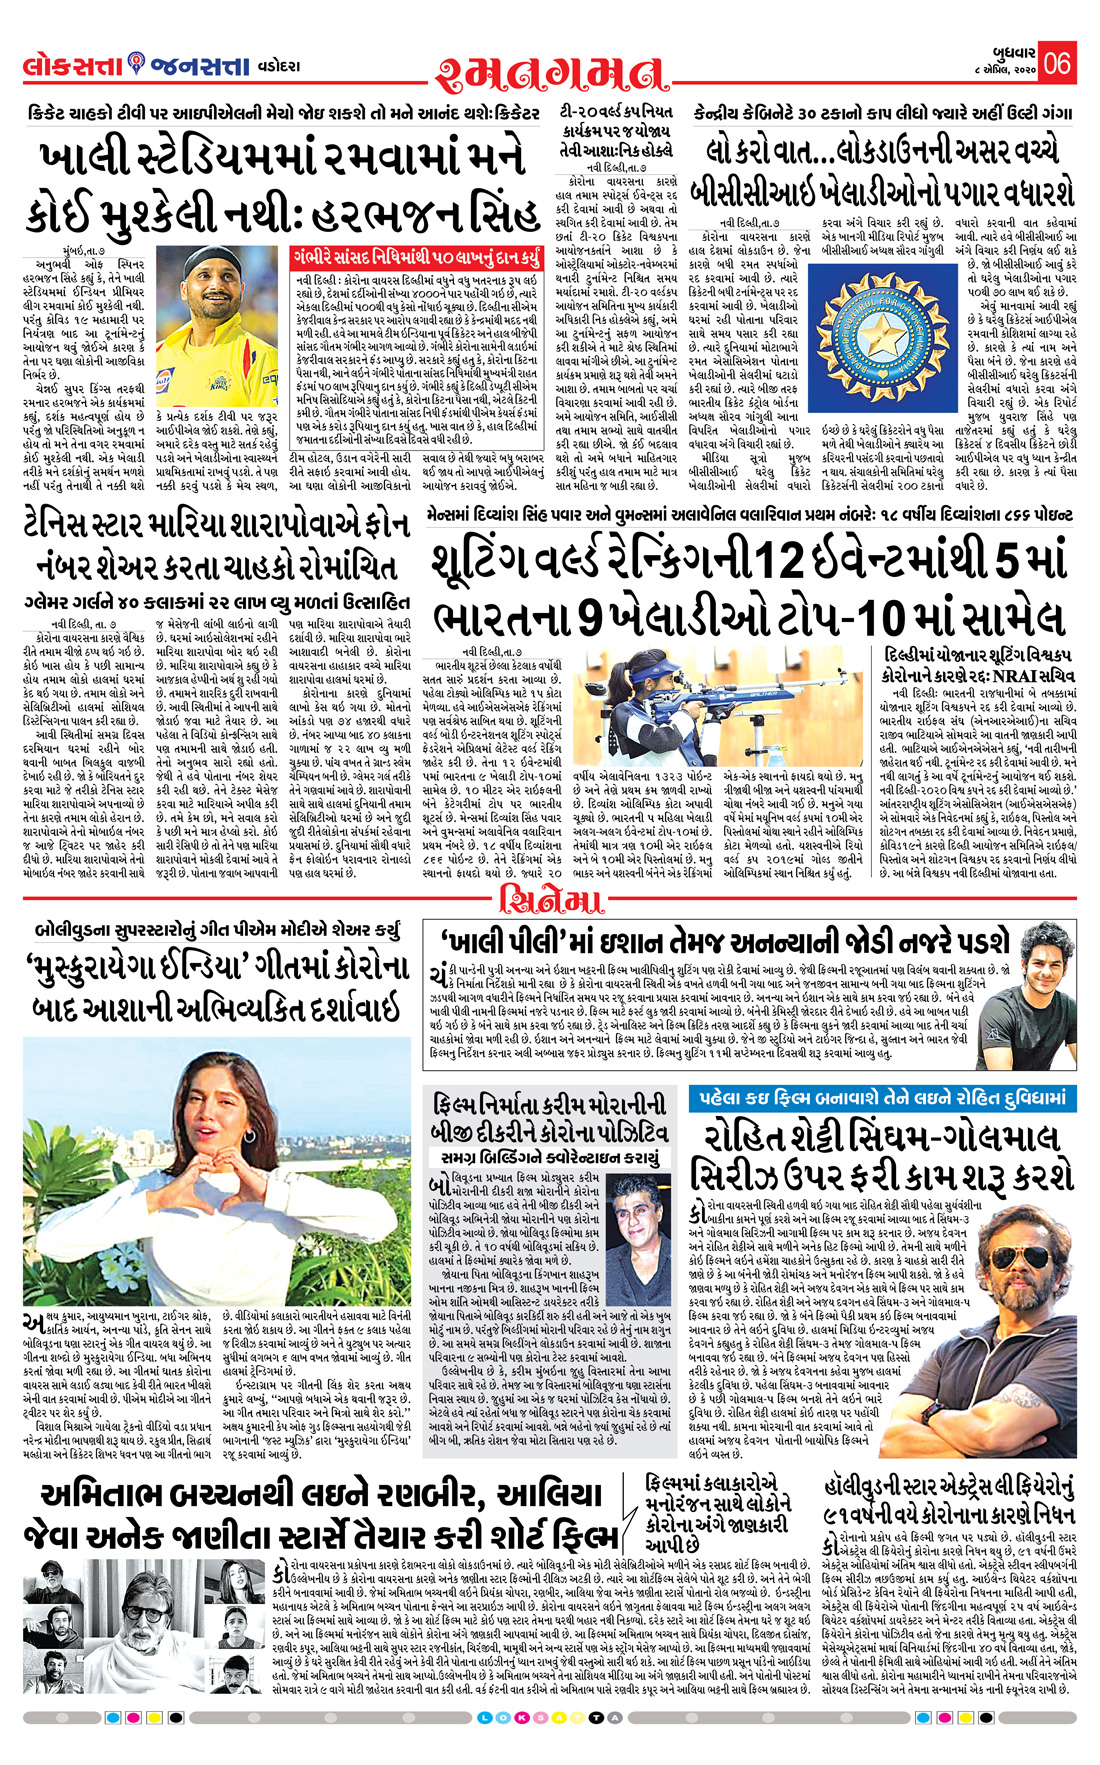 Loksatta Jansatta News Papaer E-paper dated 2020-04-08 | Page 6